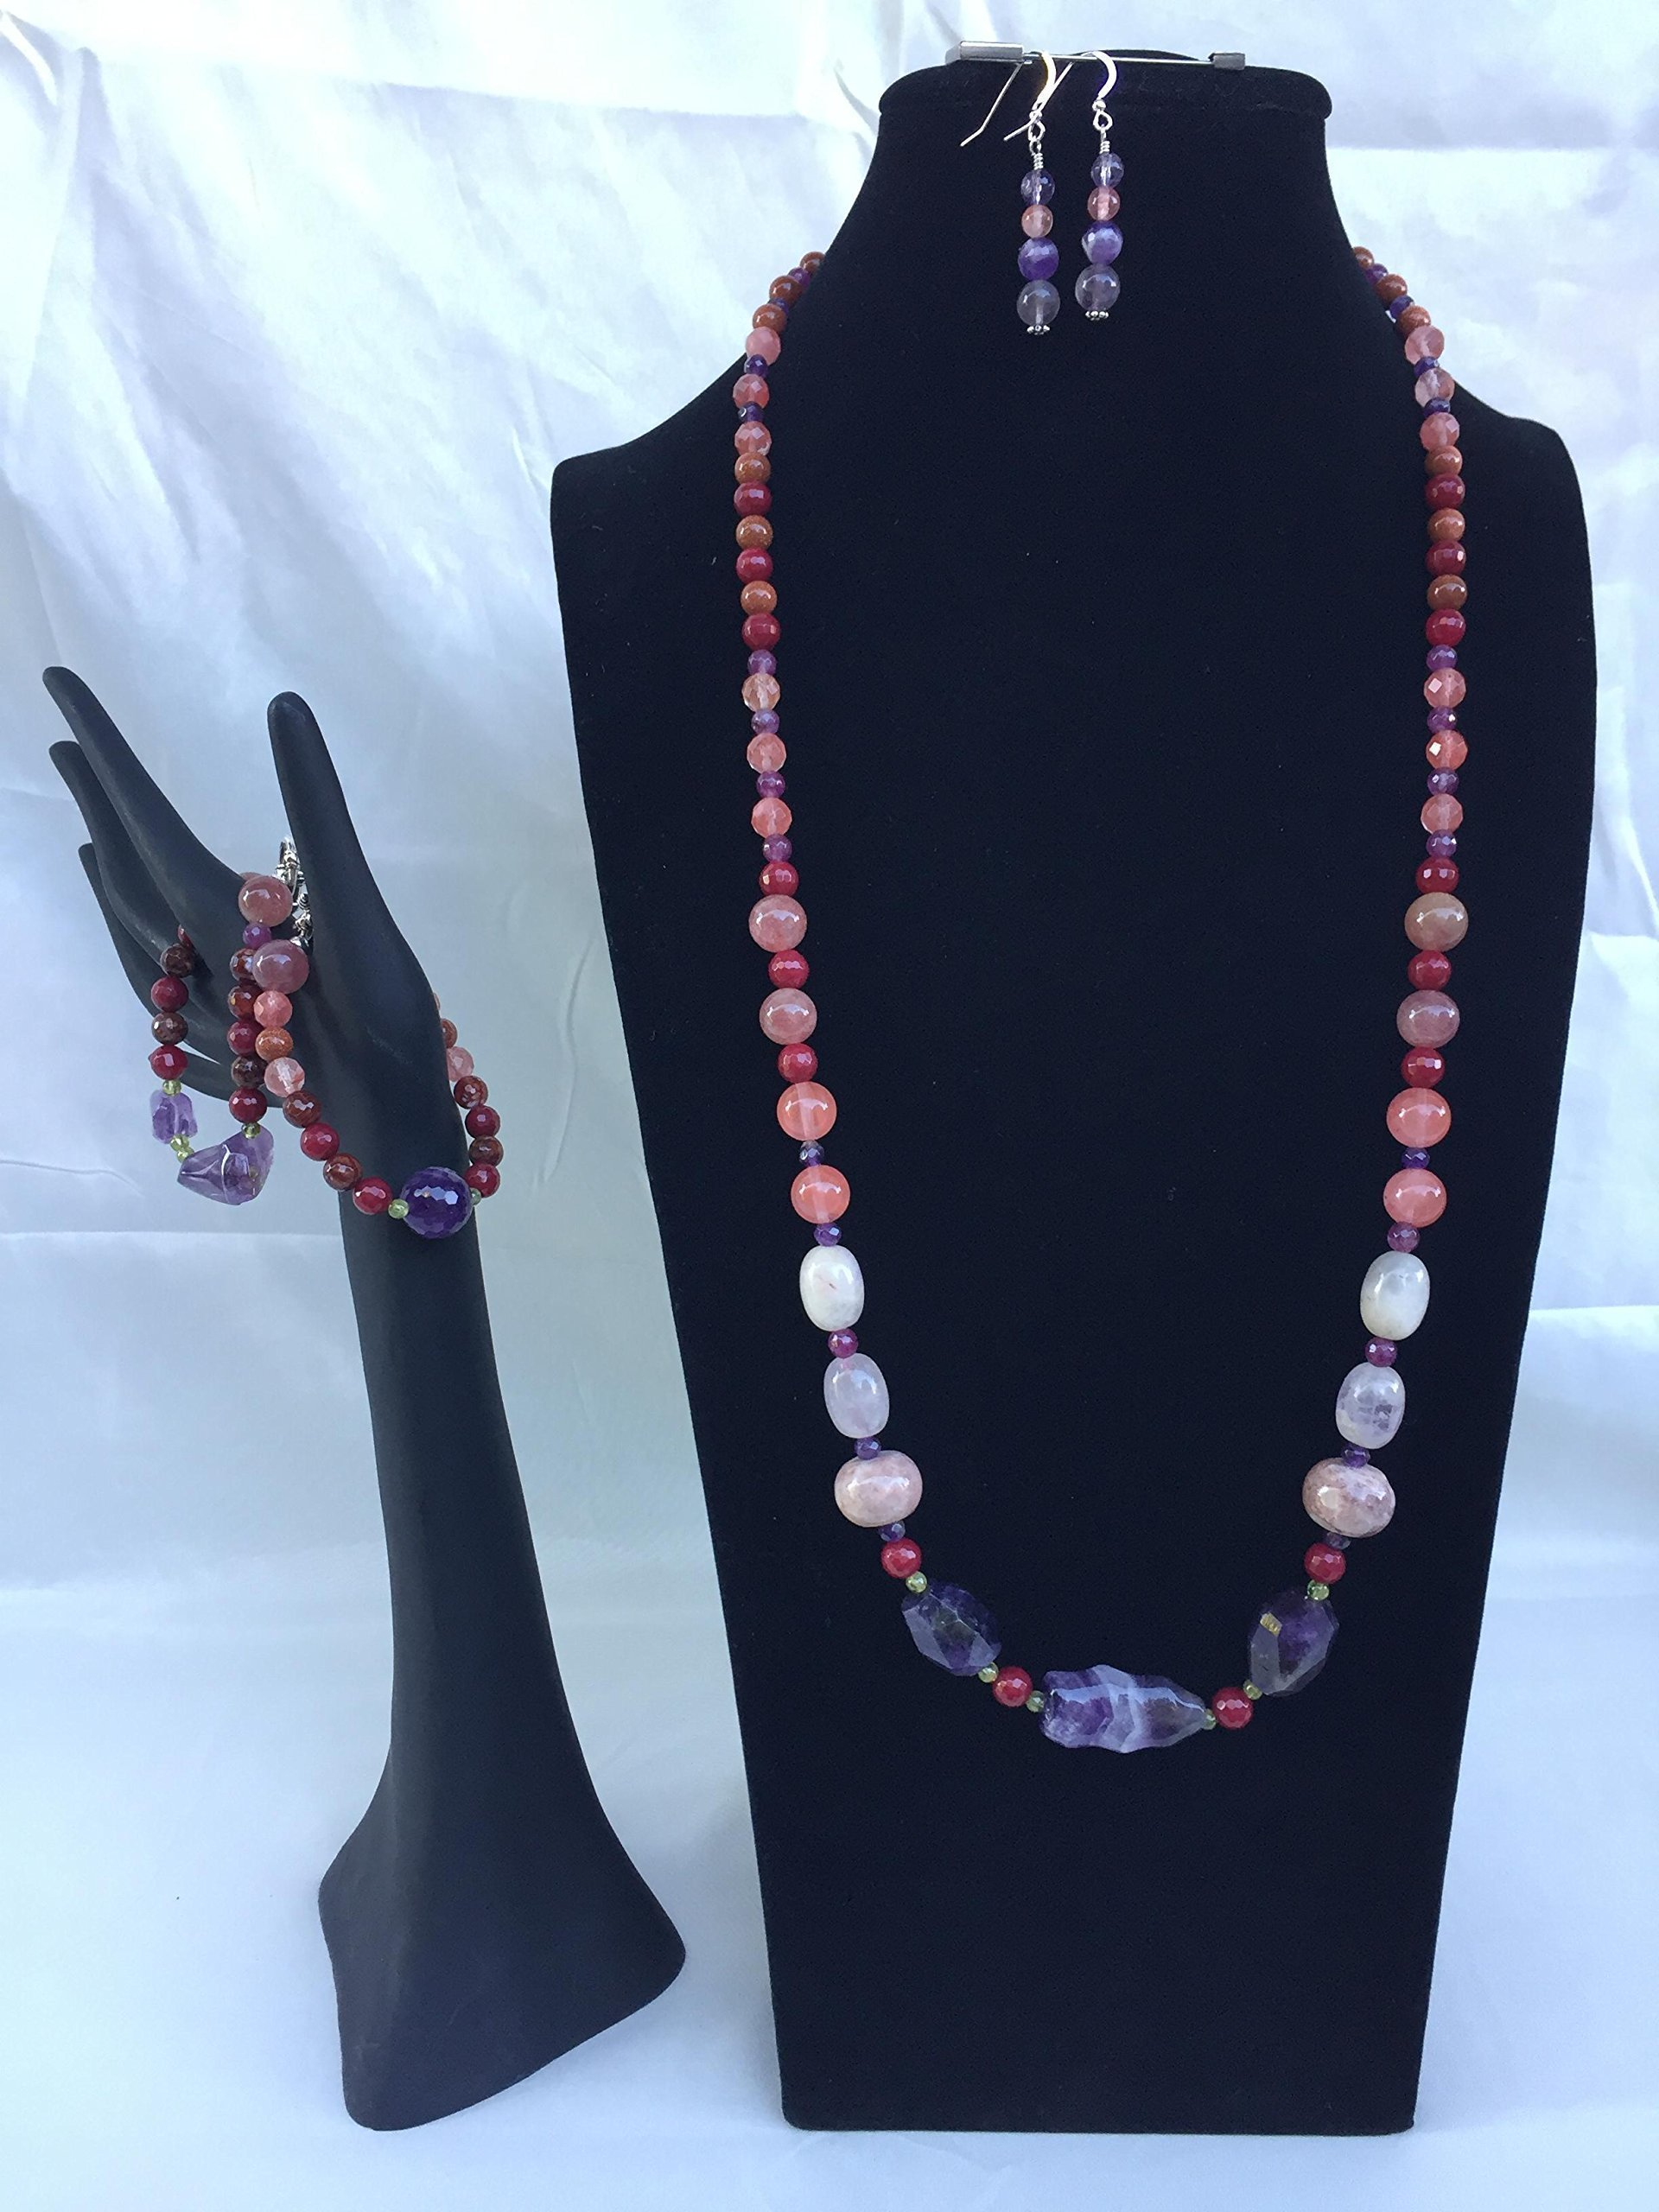 Fantastic handmade gemstone jewelry set with a long necklace, two bracelets and matching dangle earrings. Amethyst and mixed gemstones. One of a kind